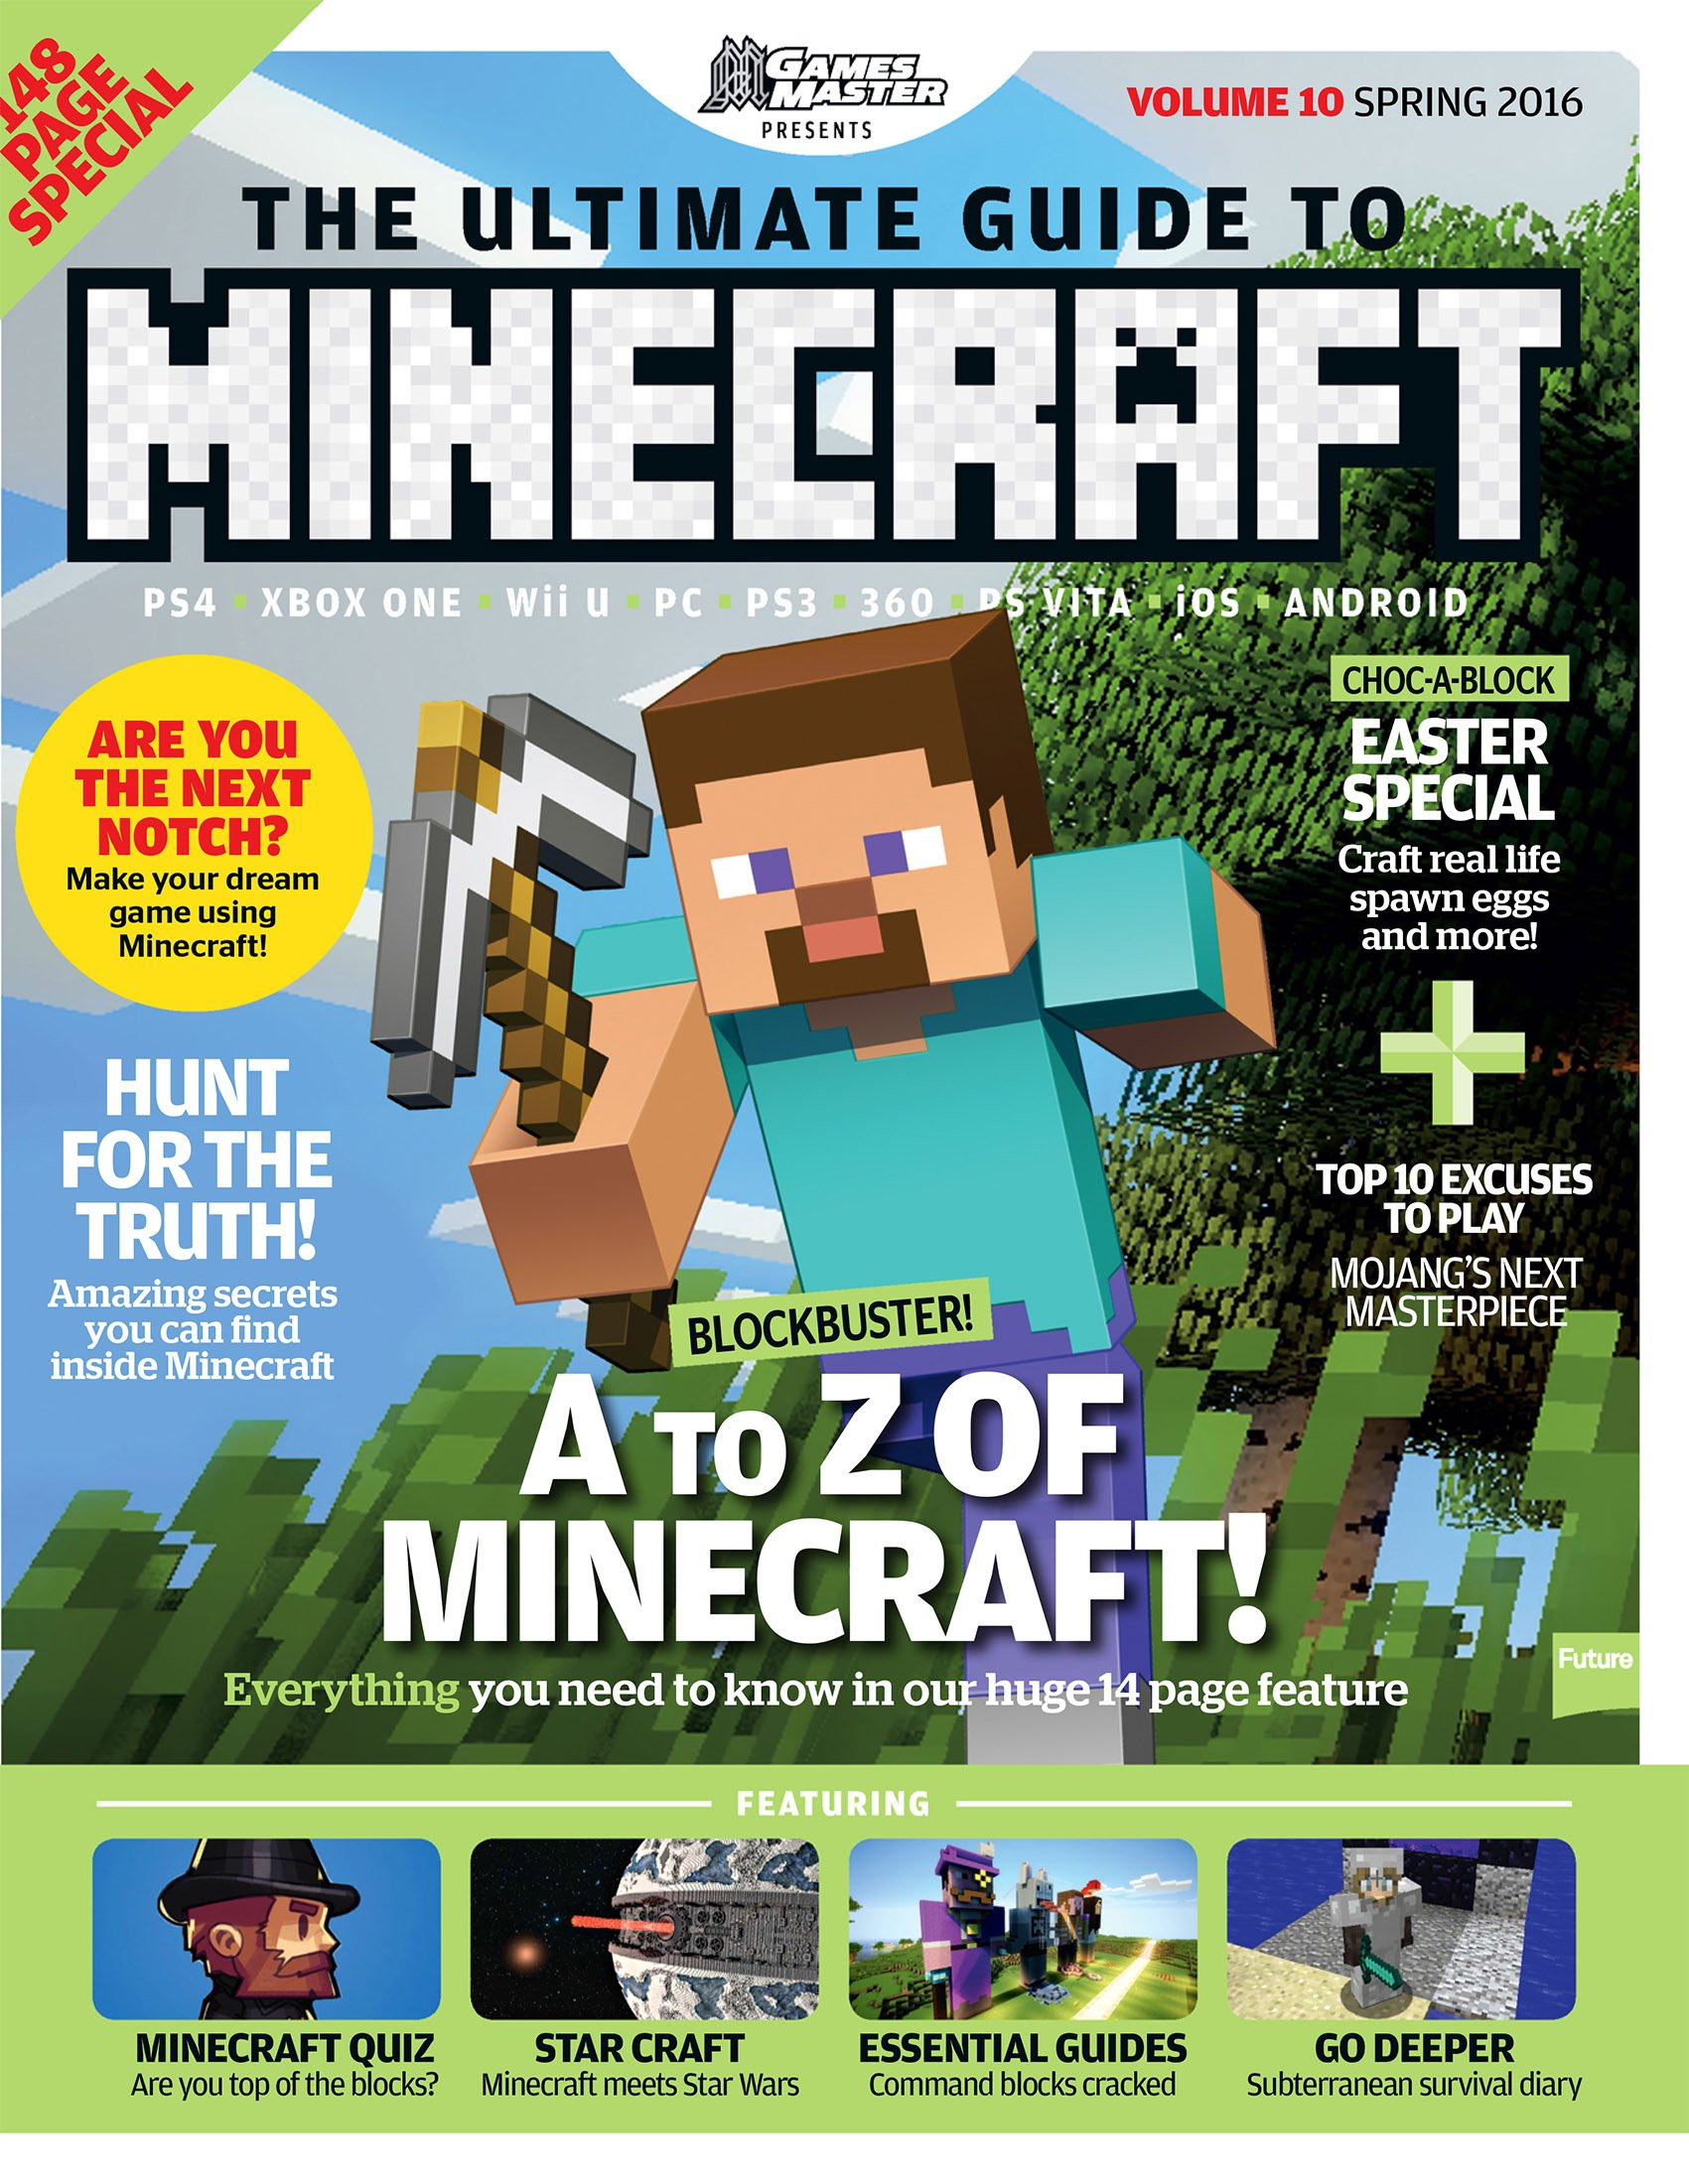 GamesMaster Presents: The Ultimate Guide to Minecraft Vol.10 (Spring 2016)